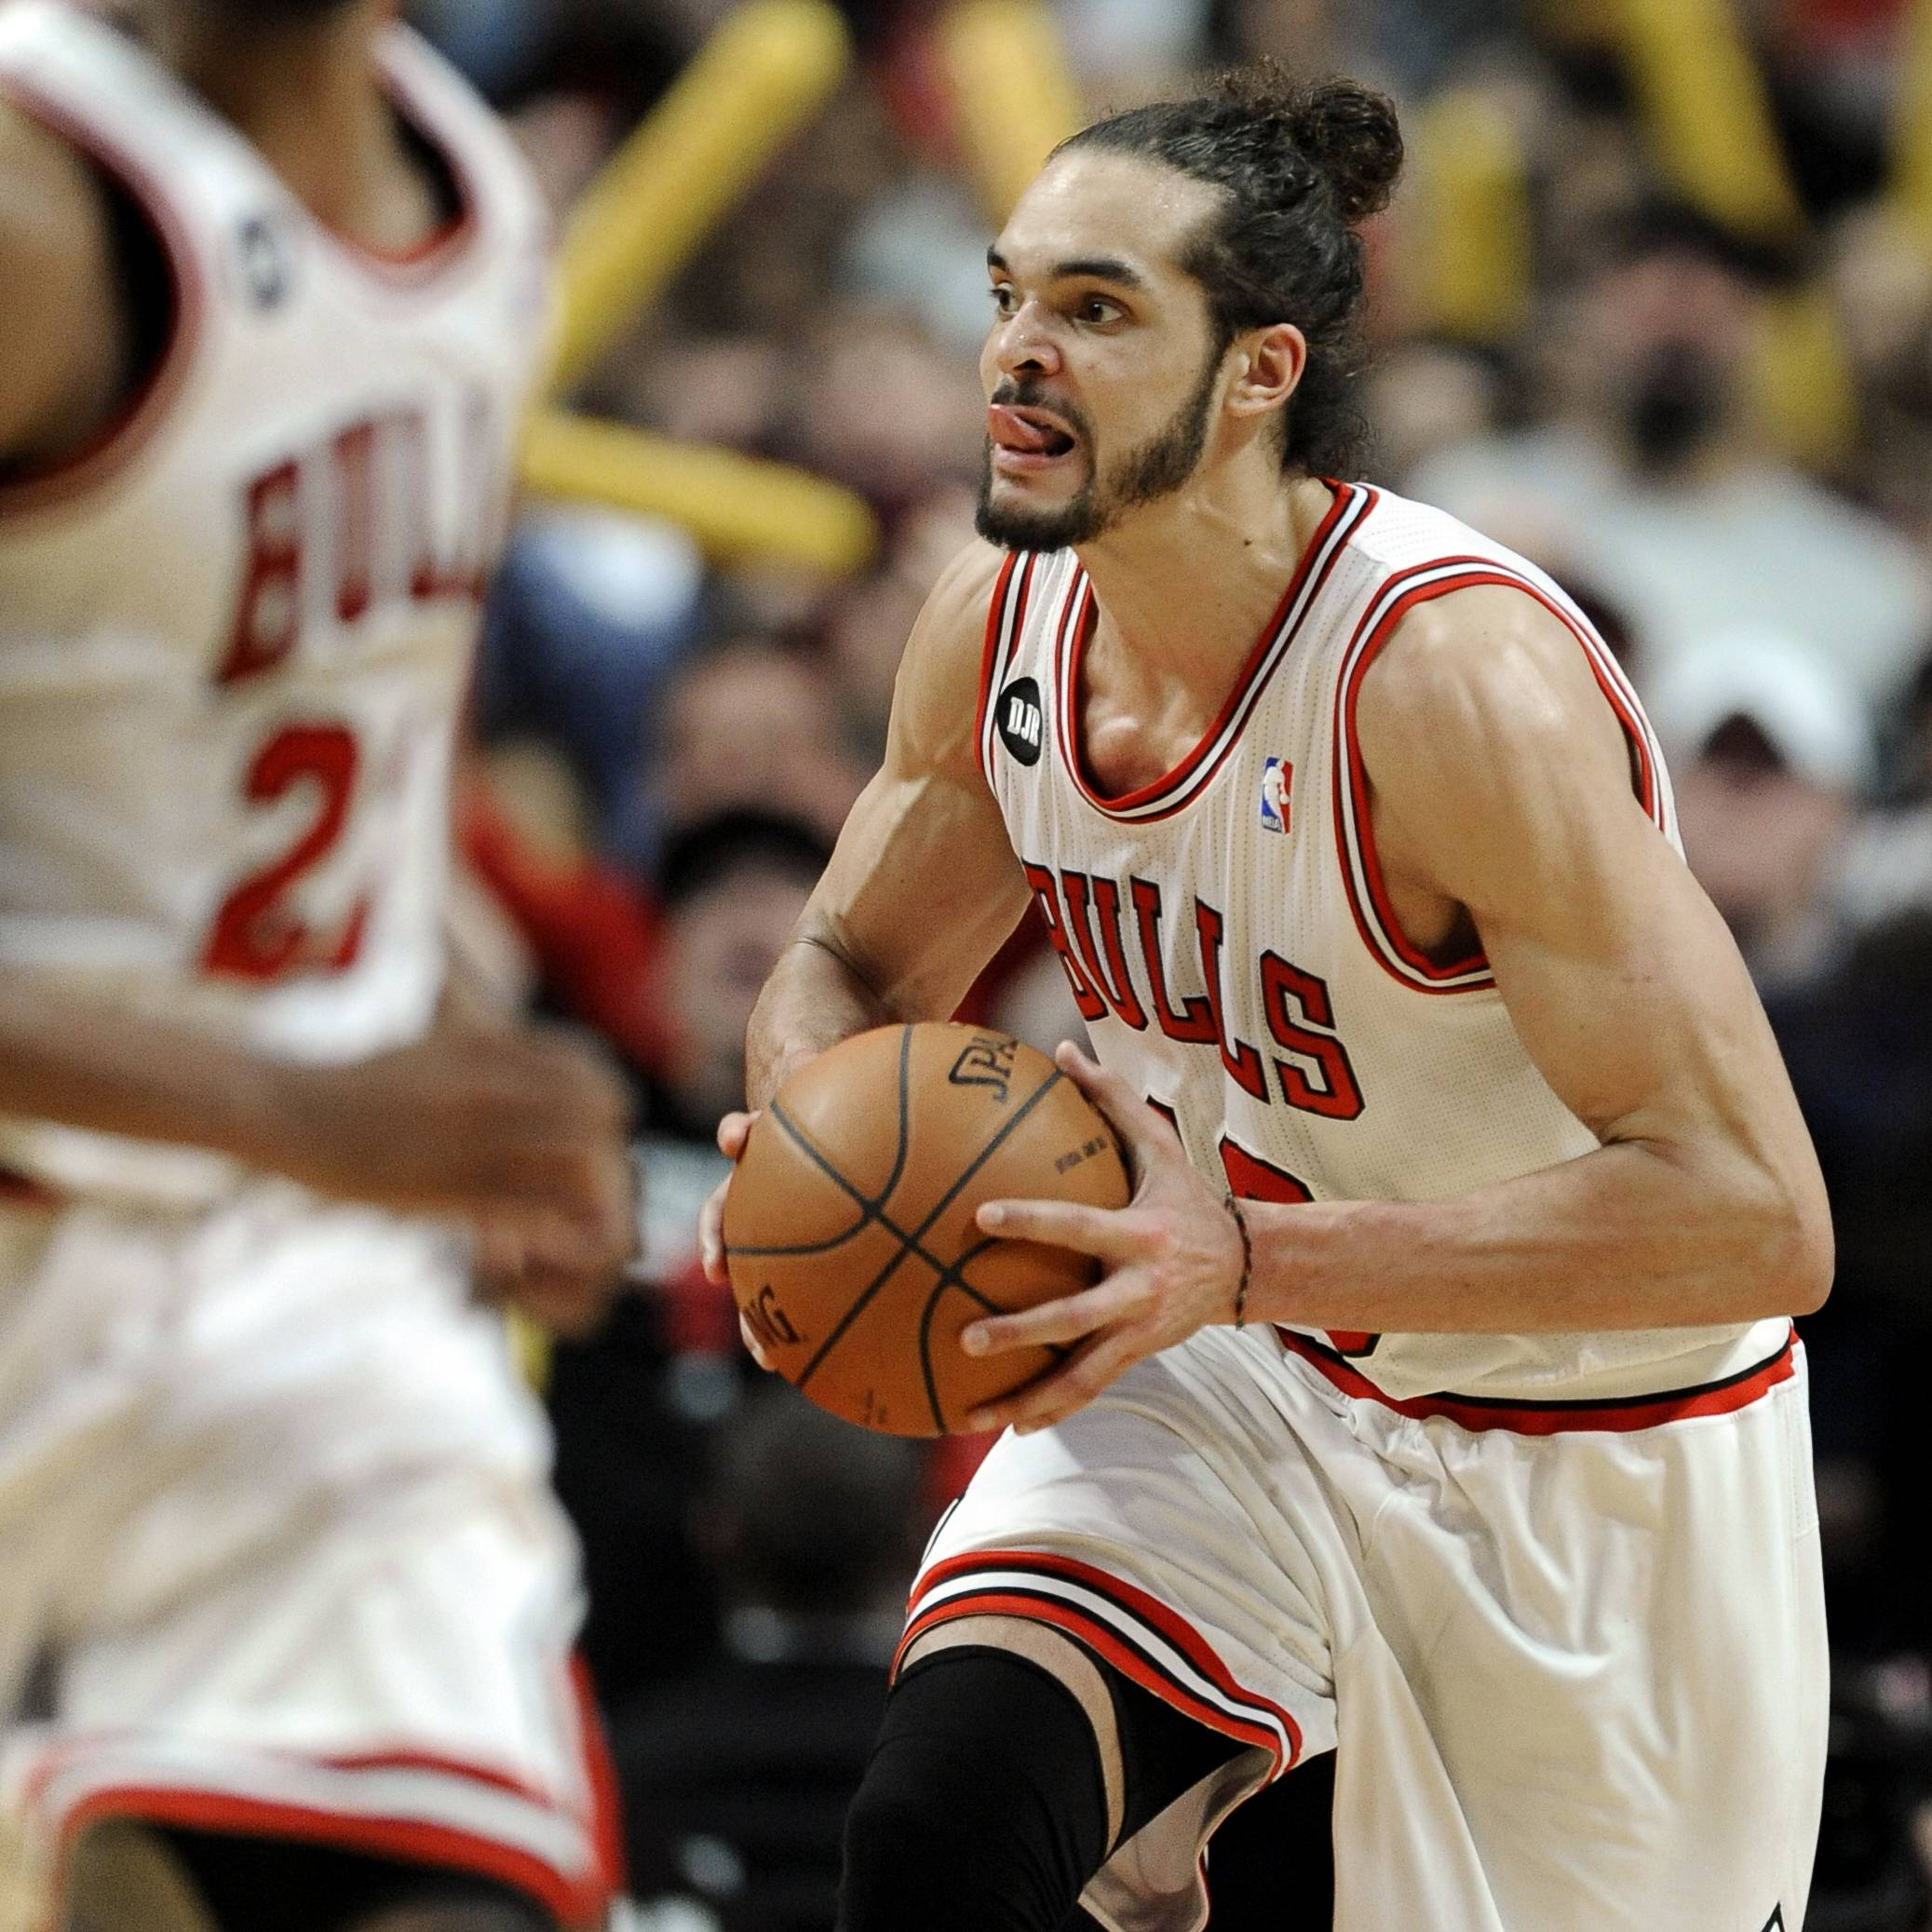 The Bulls' Joakim Noah has gone from a good NBA center to one of the best players in the game since the trade of Luol Deng to Cleveland.